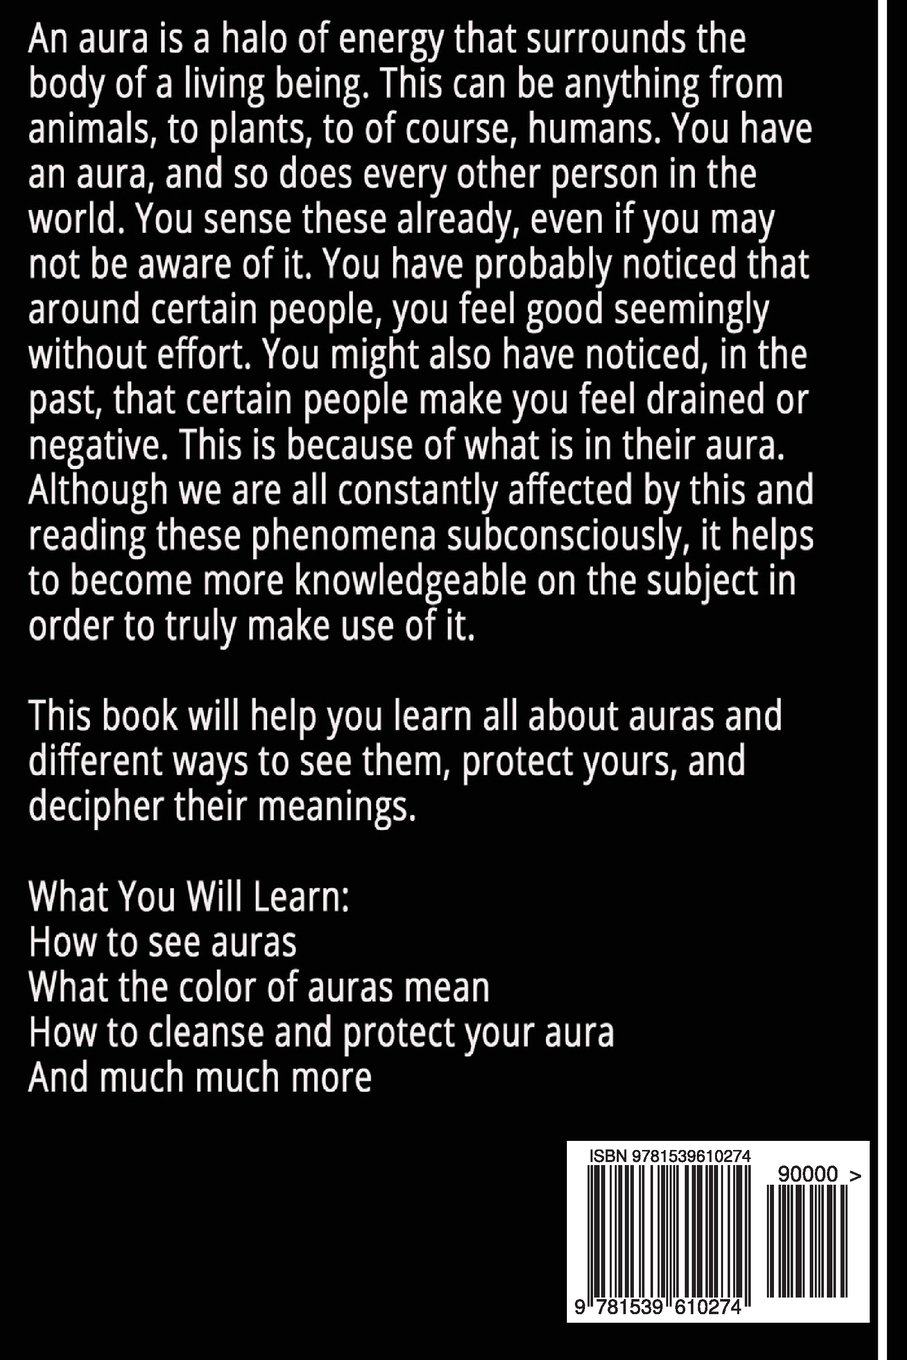 Auras how to see auras and understand their meanings paul kain auras how to see auras and understand their meanings paul kain 9781539610274 amazon books nvjuhfo Image collections